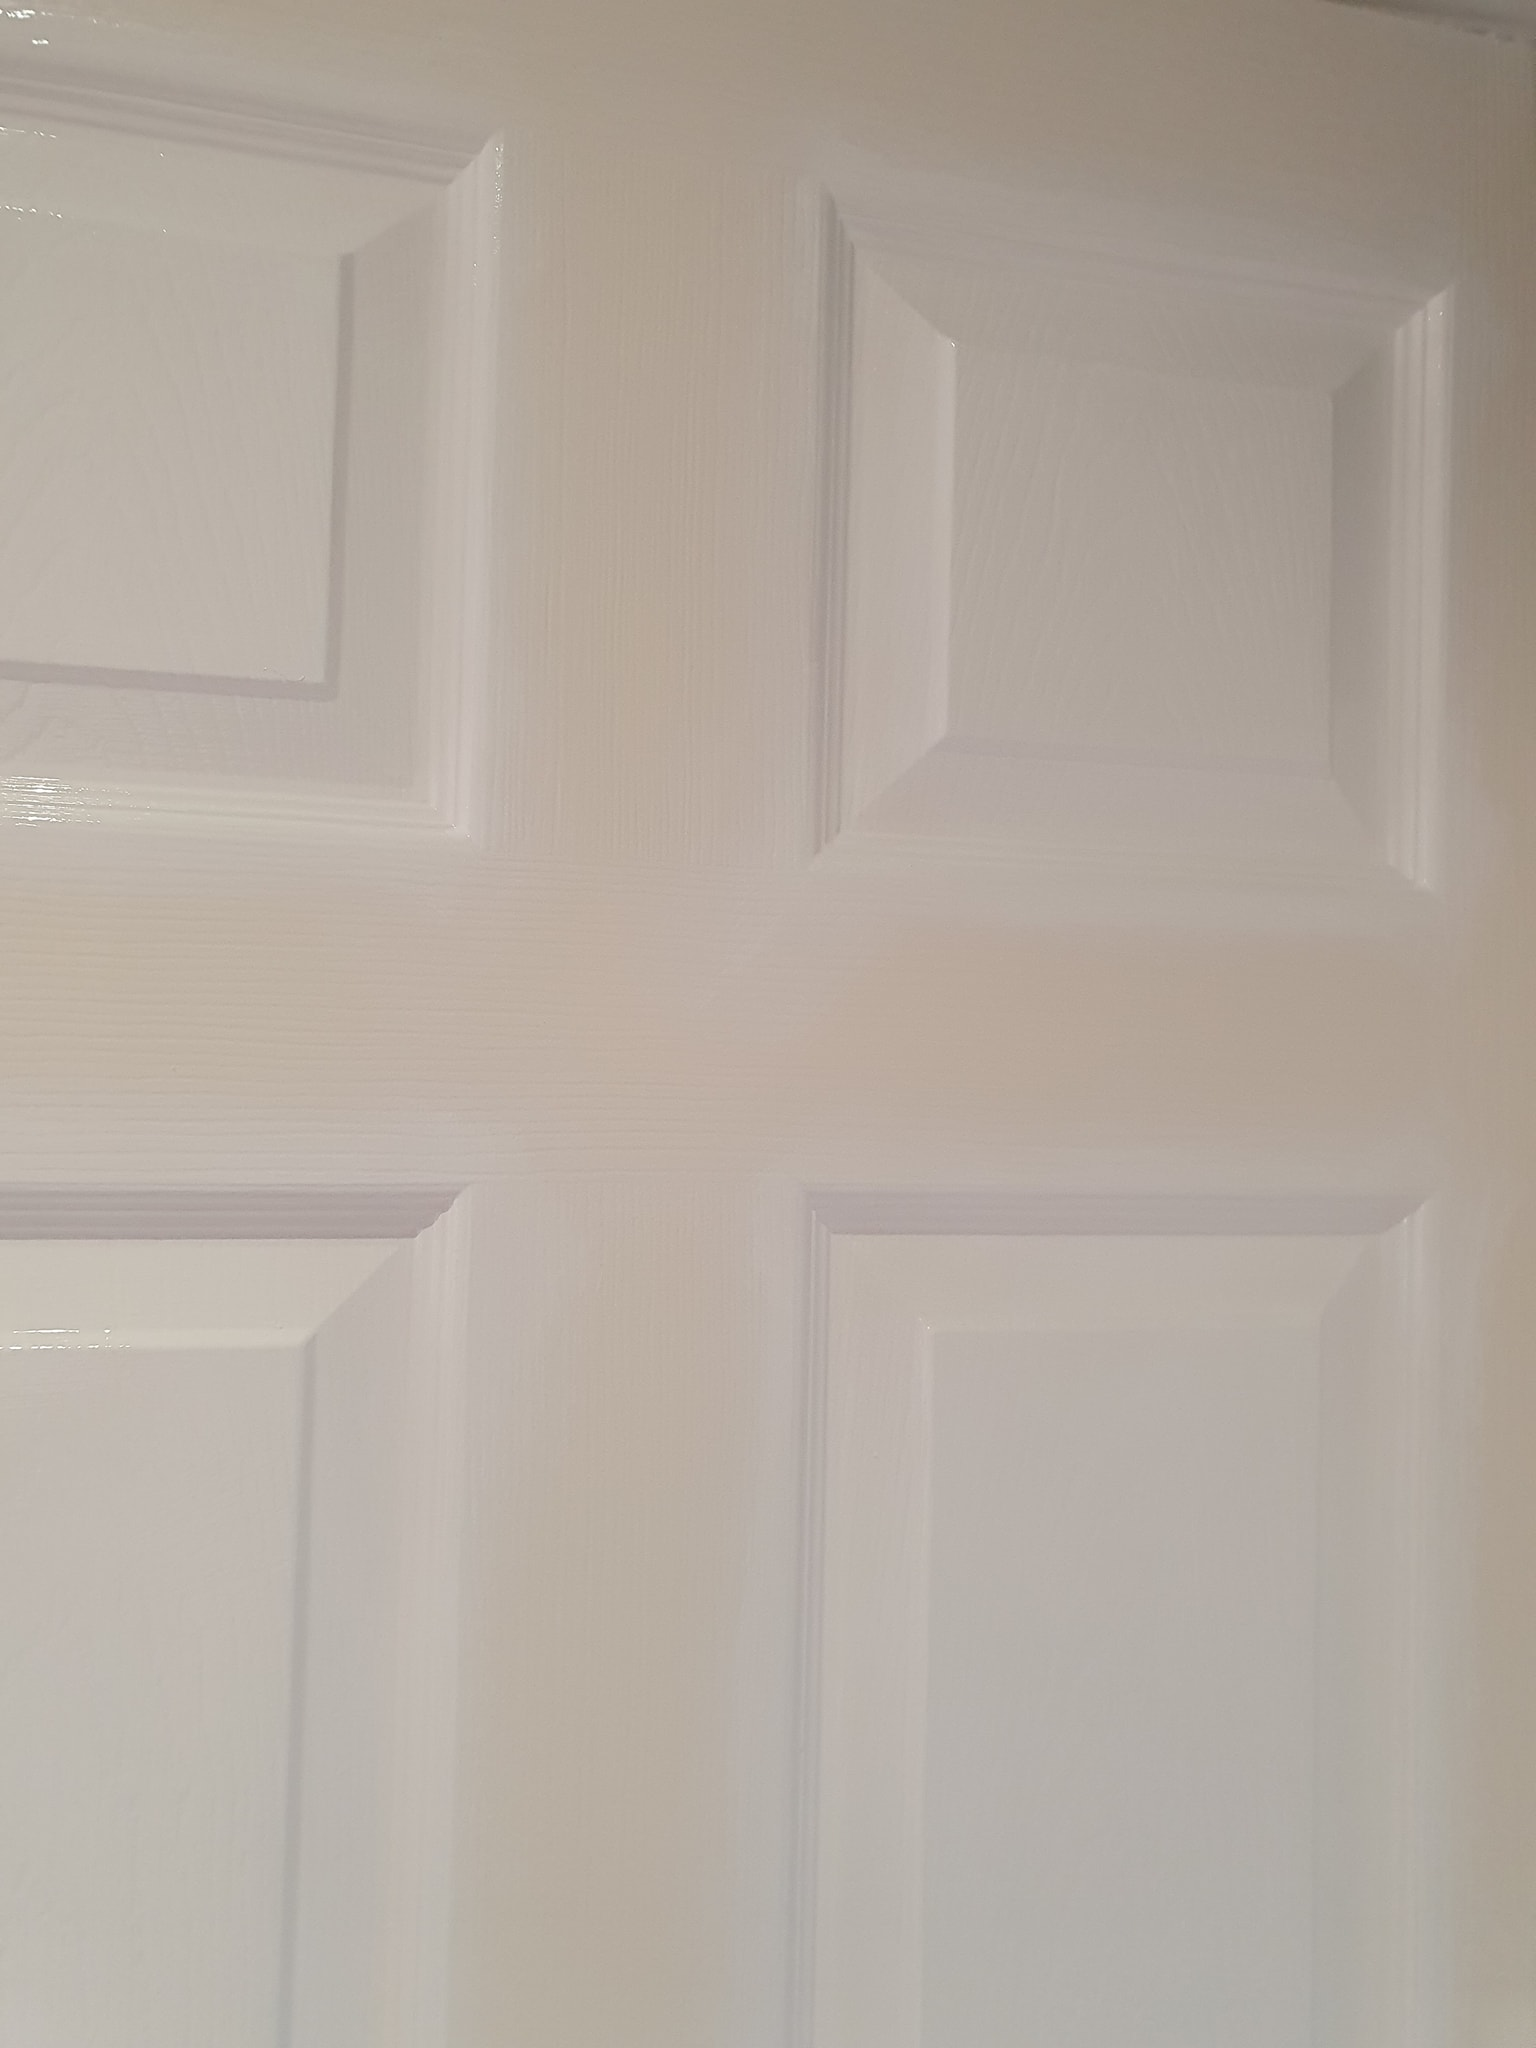 What Causes Water-Based Paint to Discolour? In this case it is Johnstone's Aqua undercoat